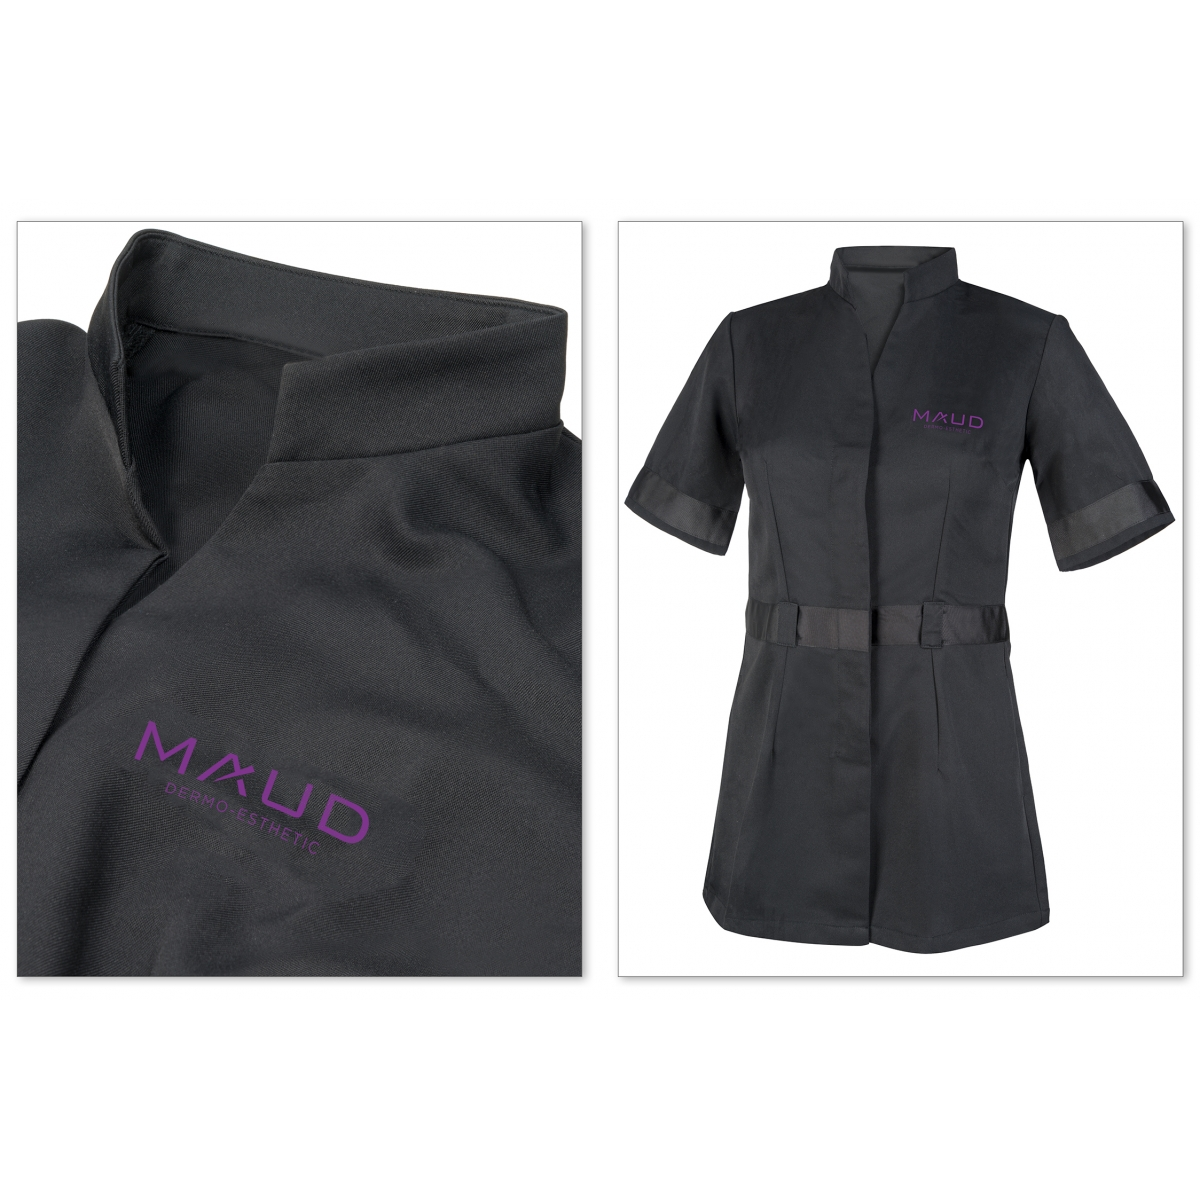 VETEMENTS - MAUD PROFESSIONAL SHOP - BLOUSE PROFESSIONNELLE FEMME MAUD NOIR (S)